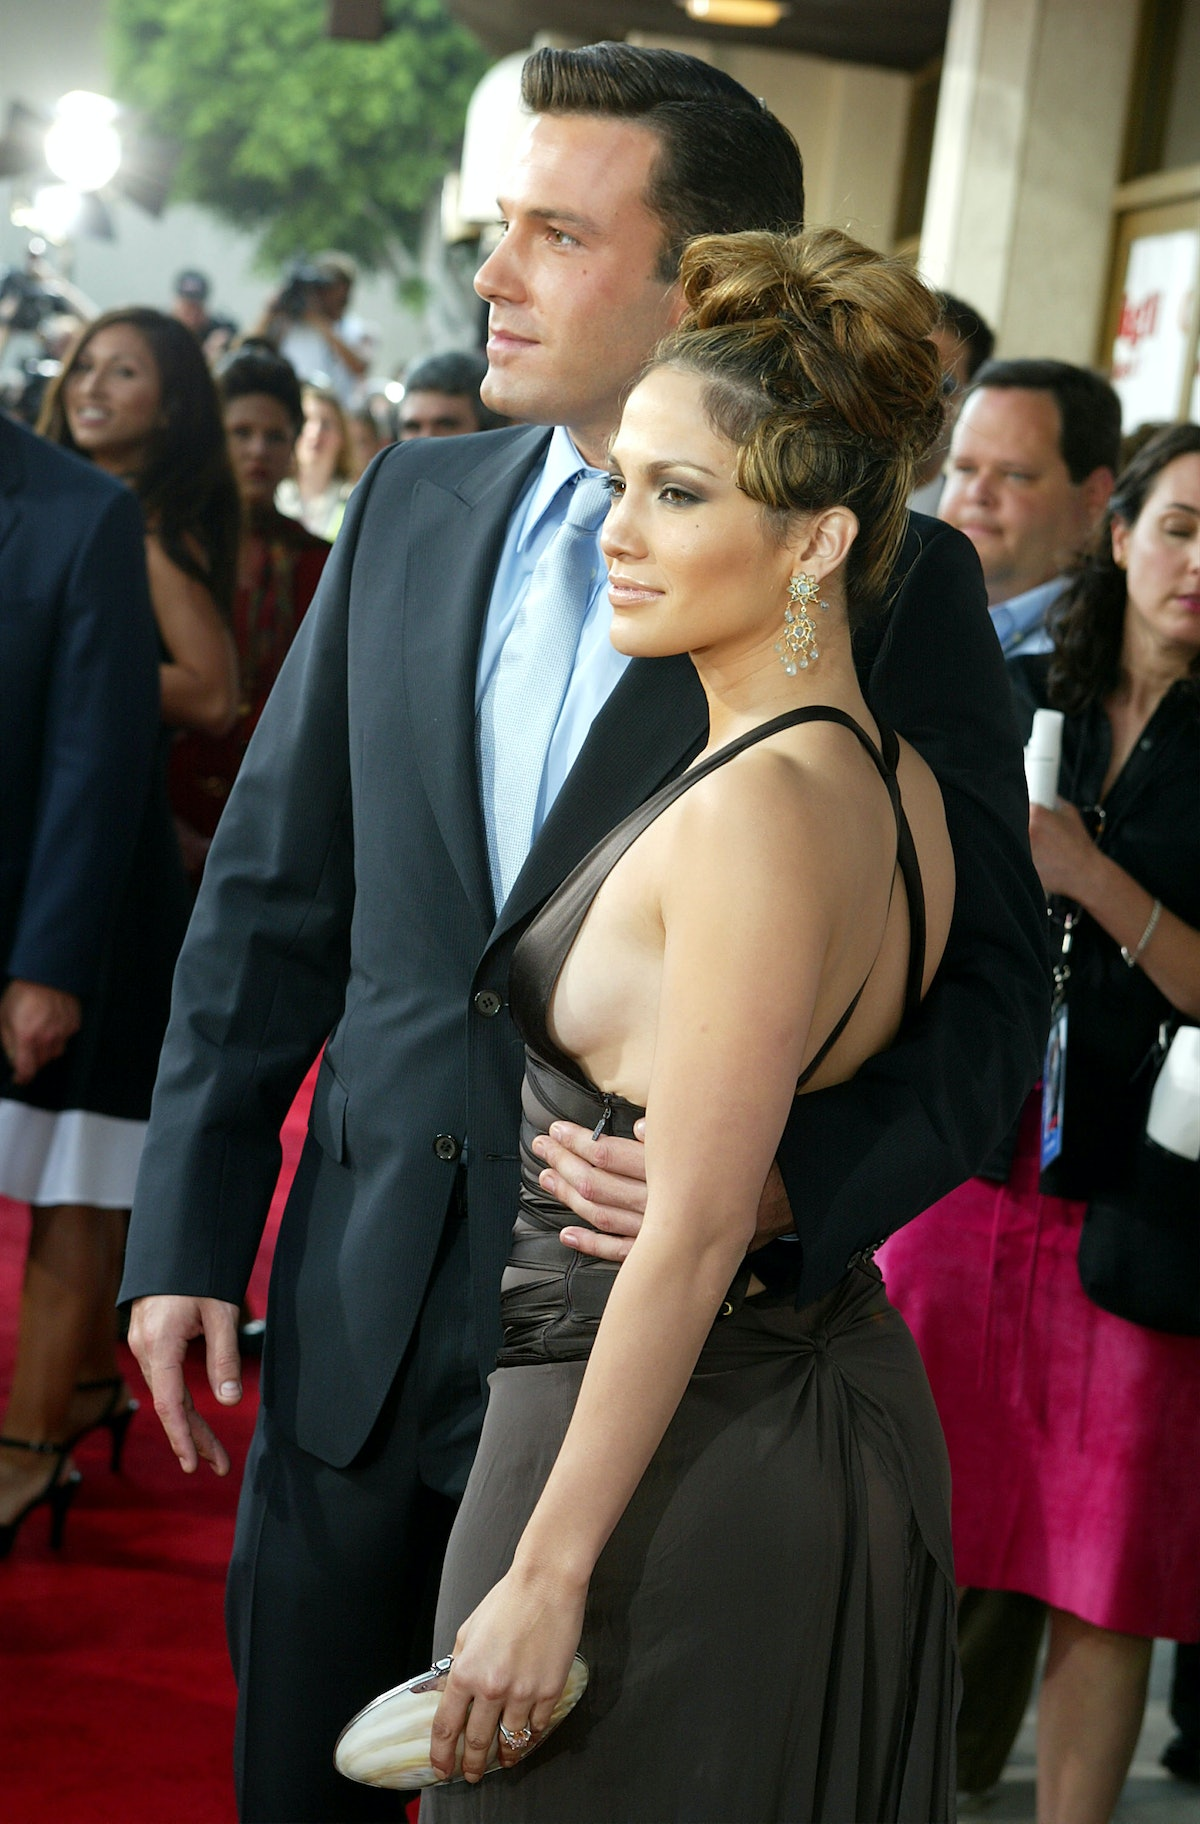 Jennifer Lopez and Ben Affleck first got engaged in 2002.